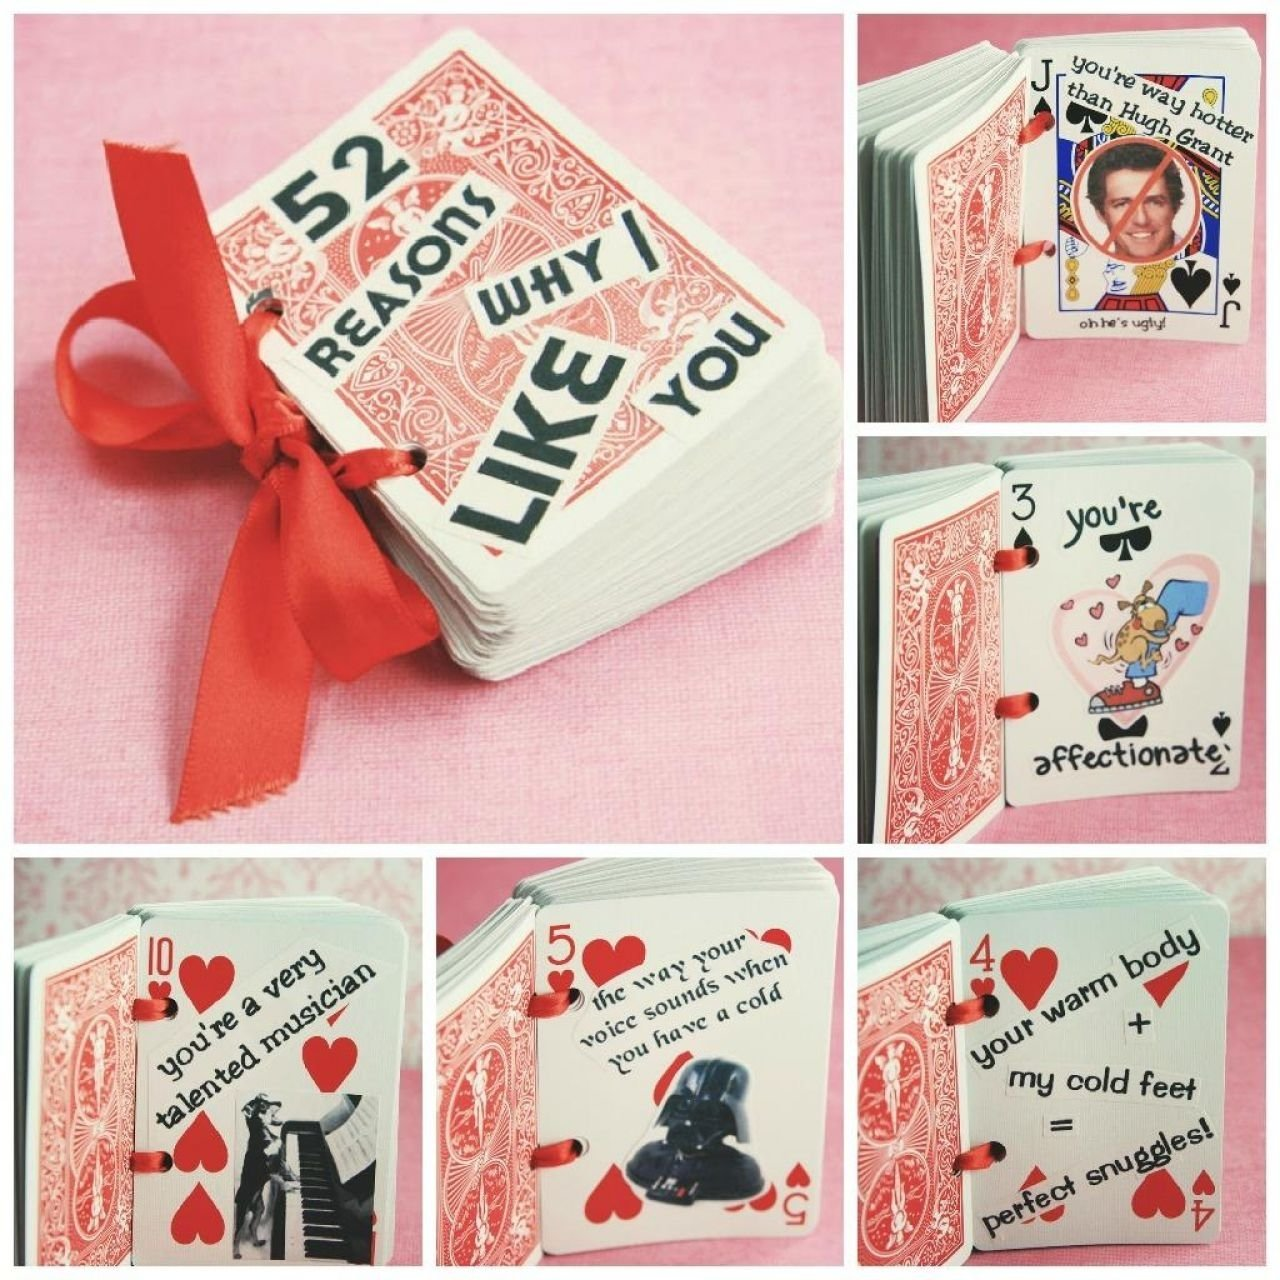 10 Most Popular Creative Ideas For Valentines Day valentines day crafts him lovely valentine gifts your dma homes 2